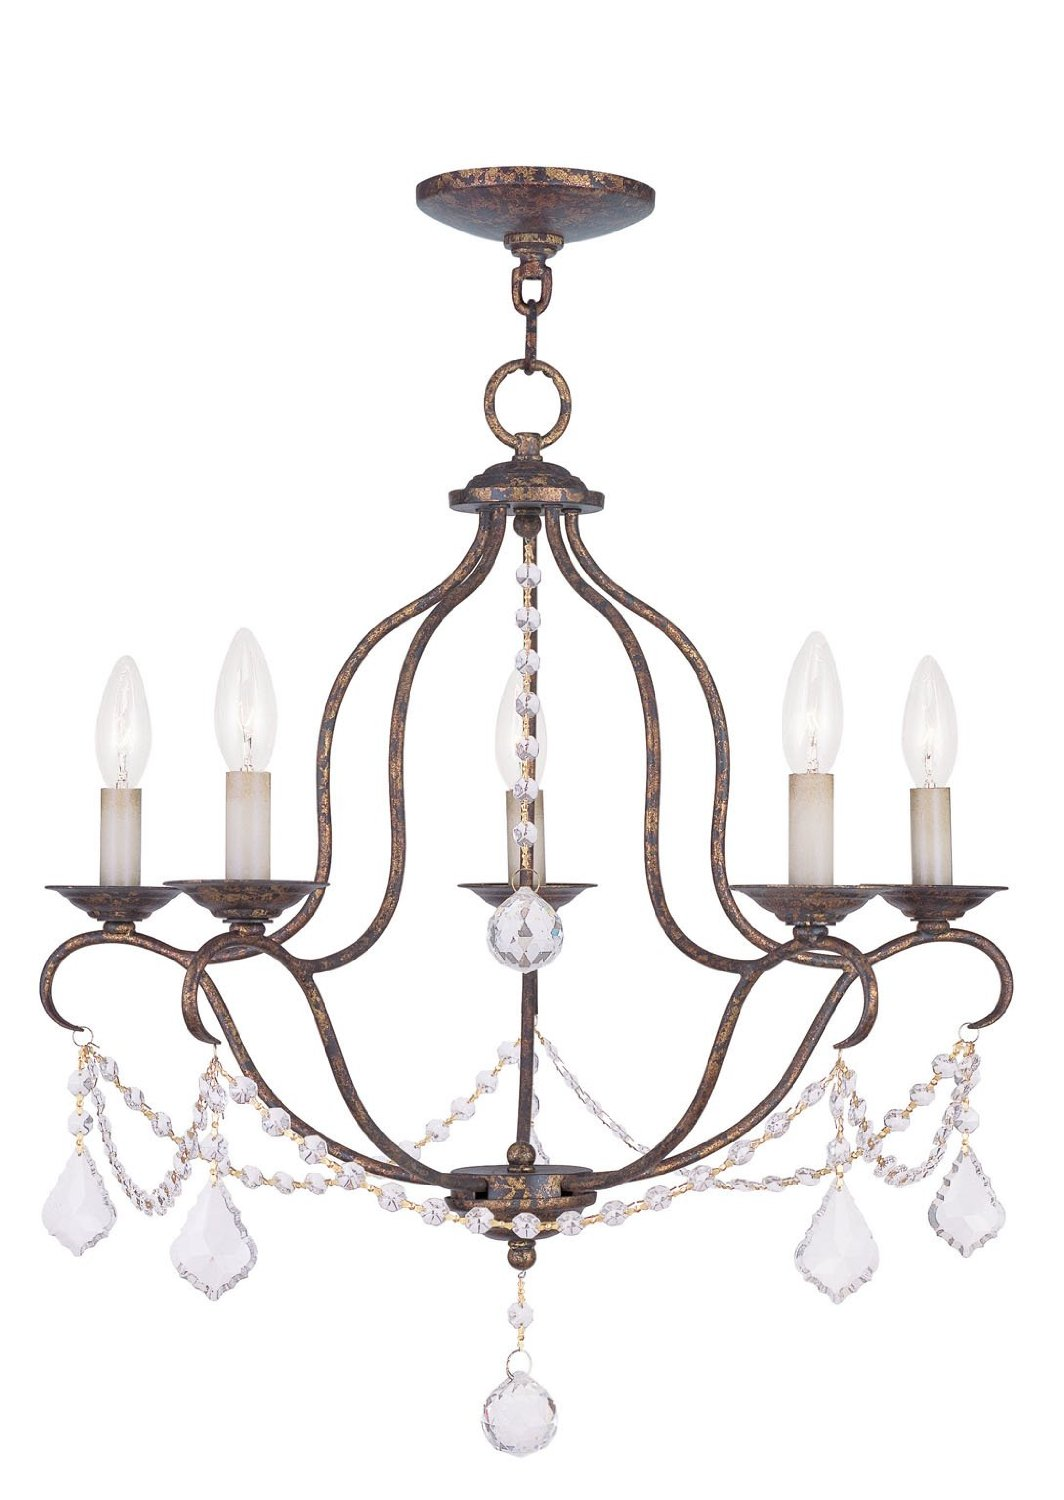 Chic Livex Lighting 6426 71 Chesterfield Chandelier For Home Lighting Ideas